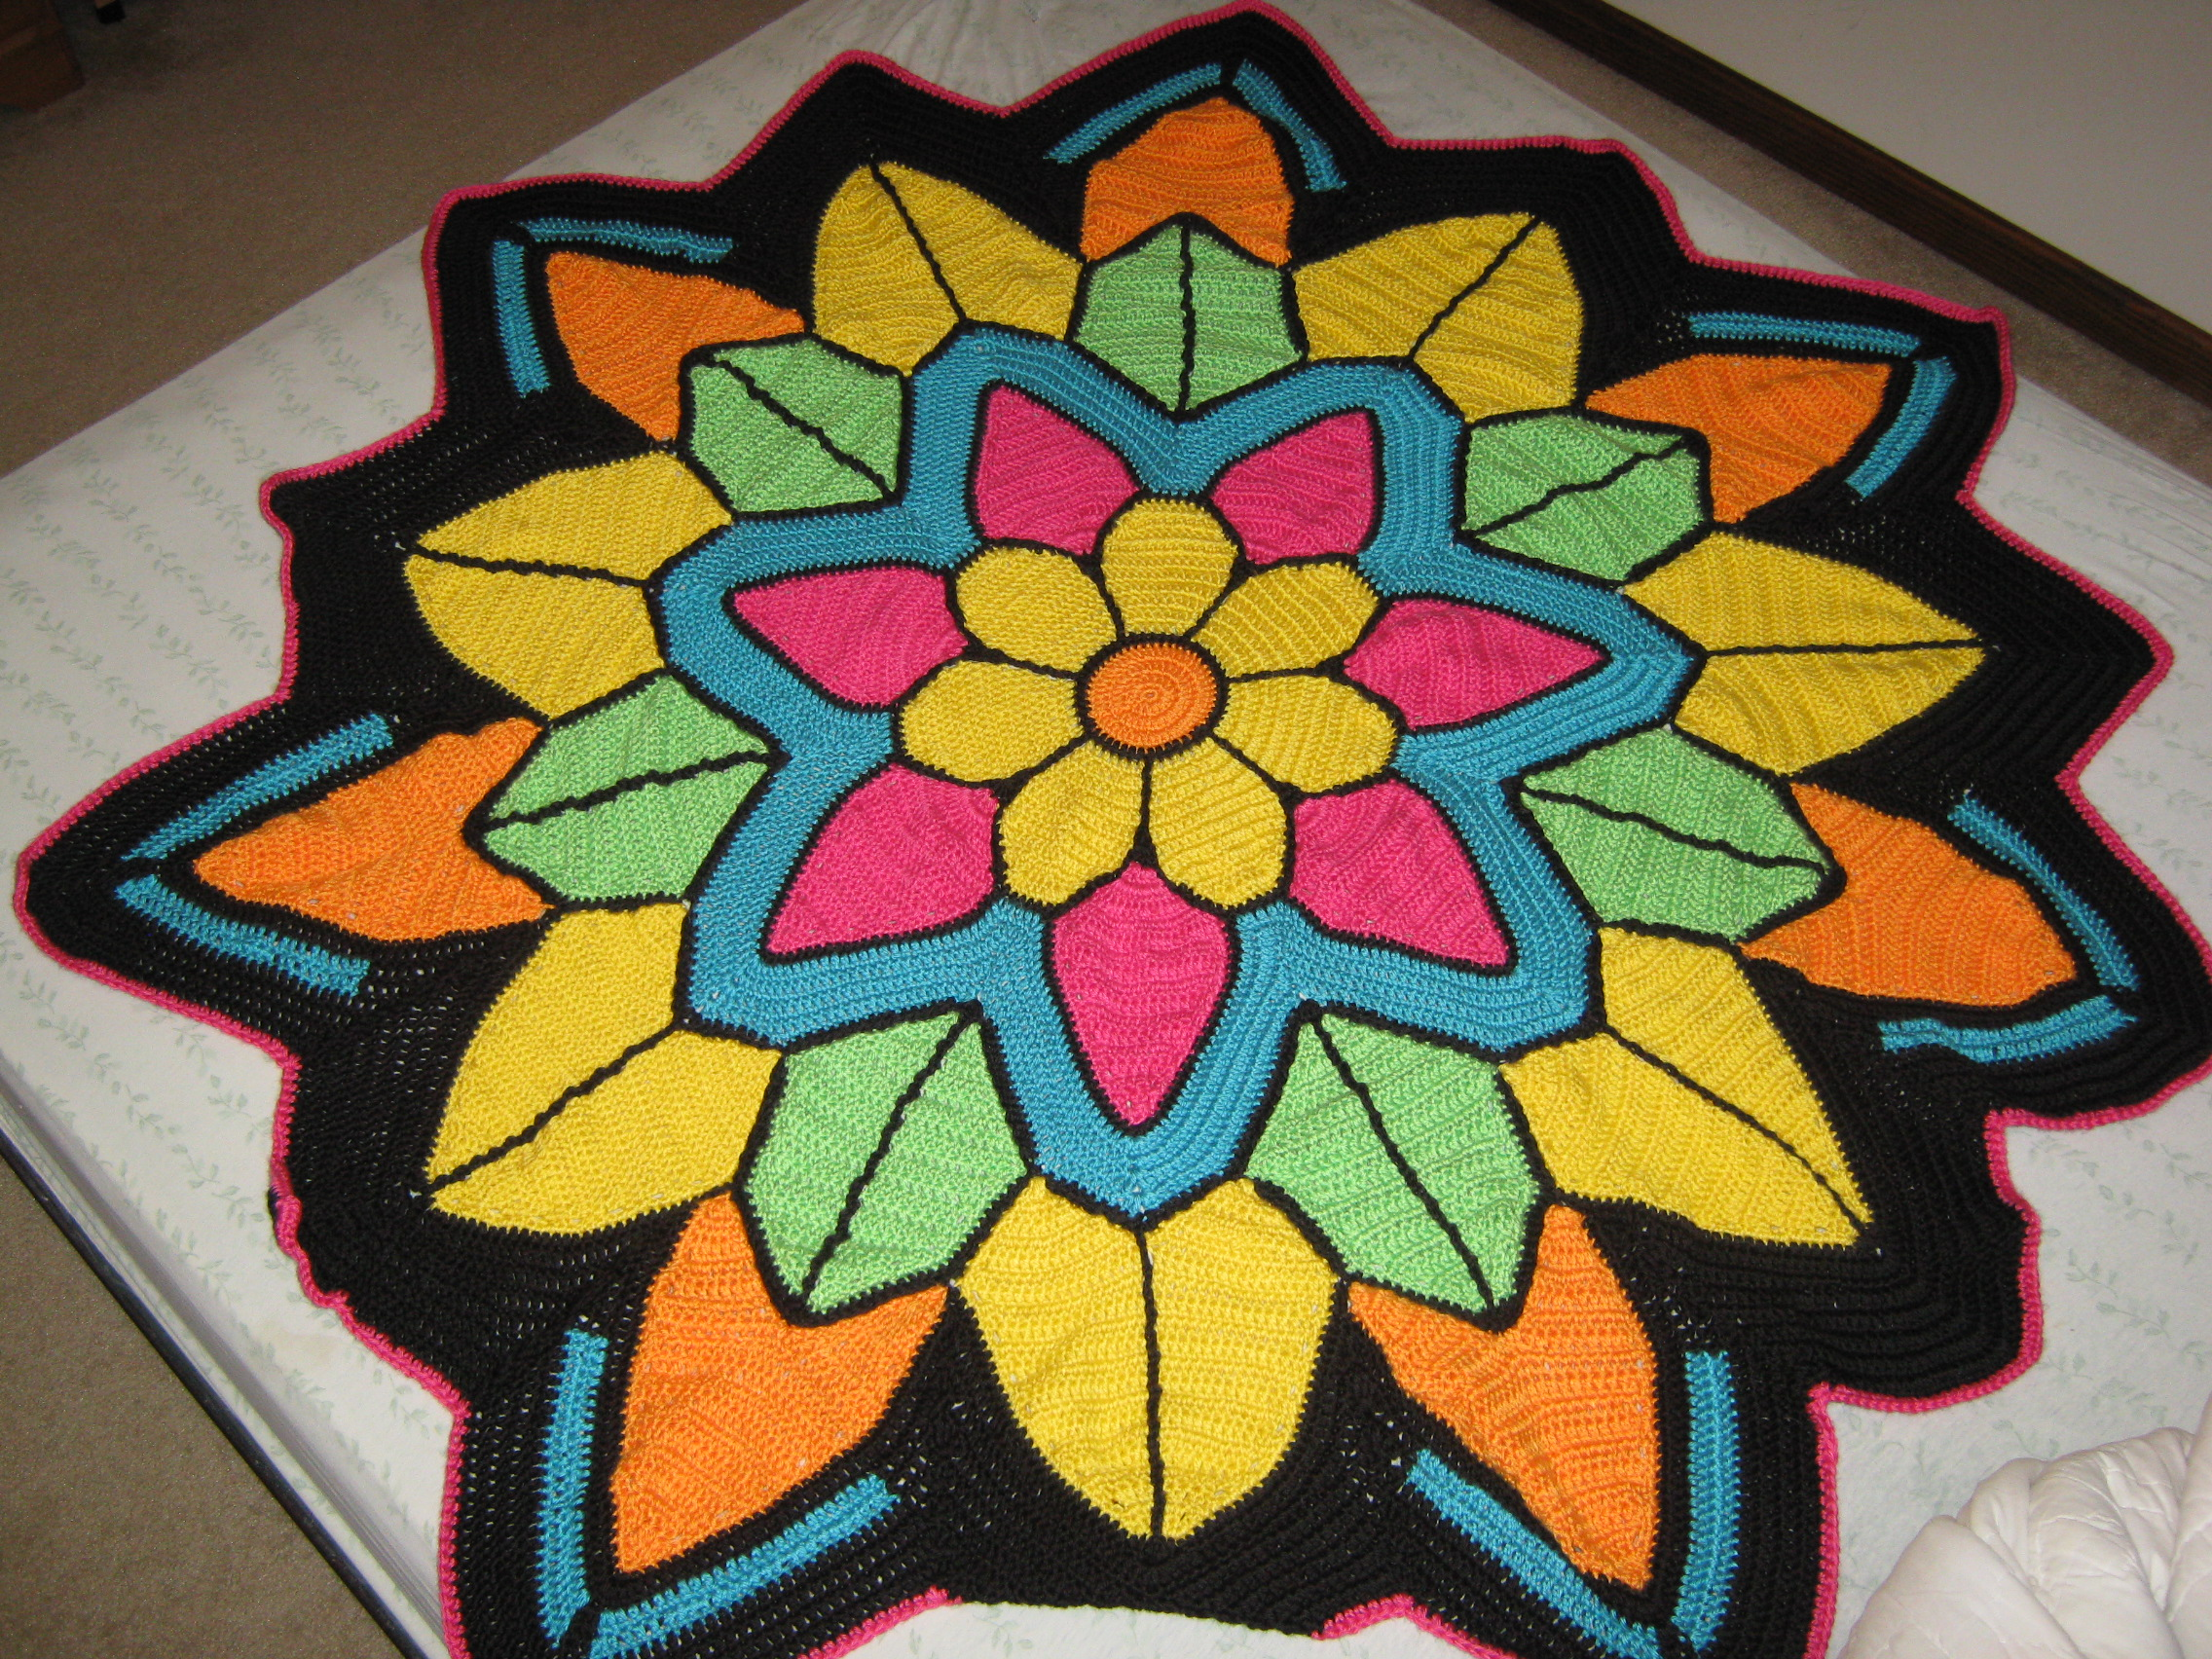 Finished flower 1